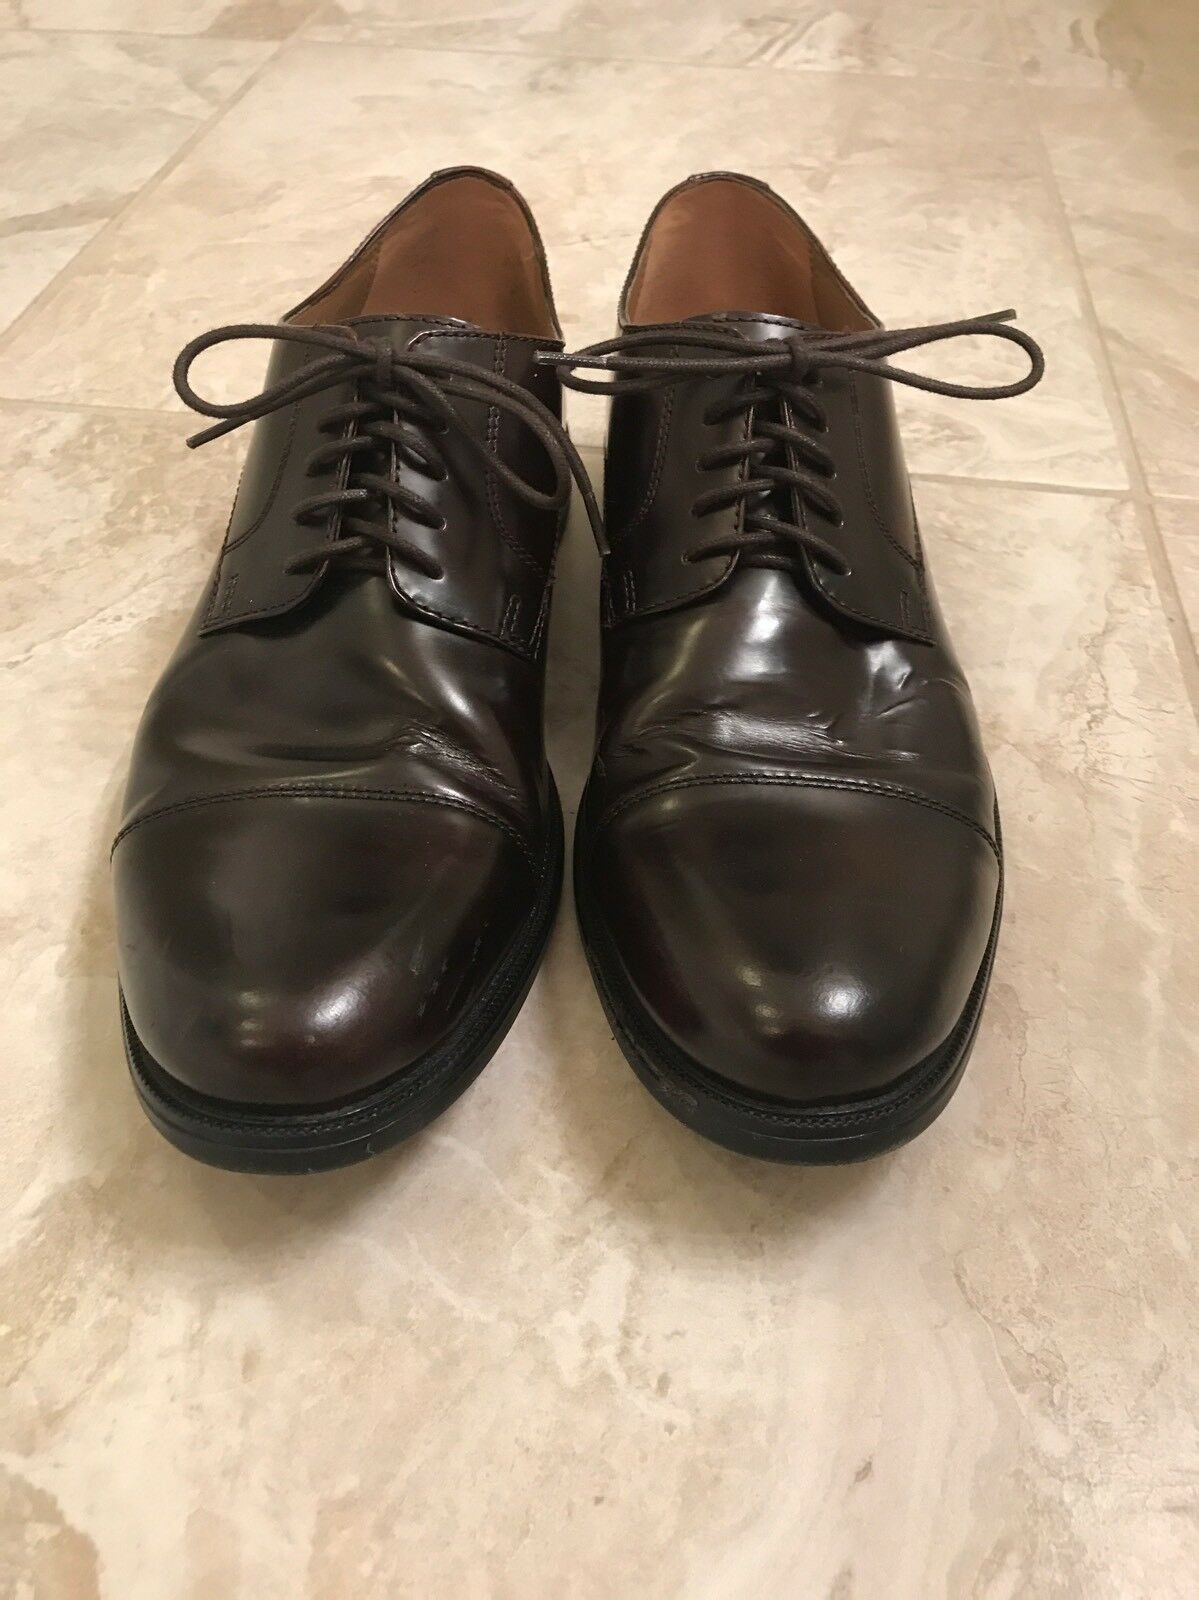 Bostonian Mens shoes Calhoun Limit Burgundy Leather cushioned Support 26102726